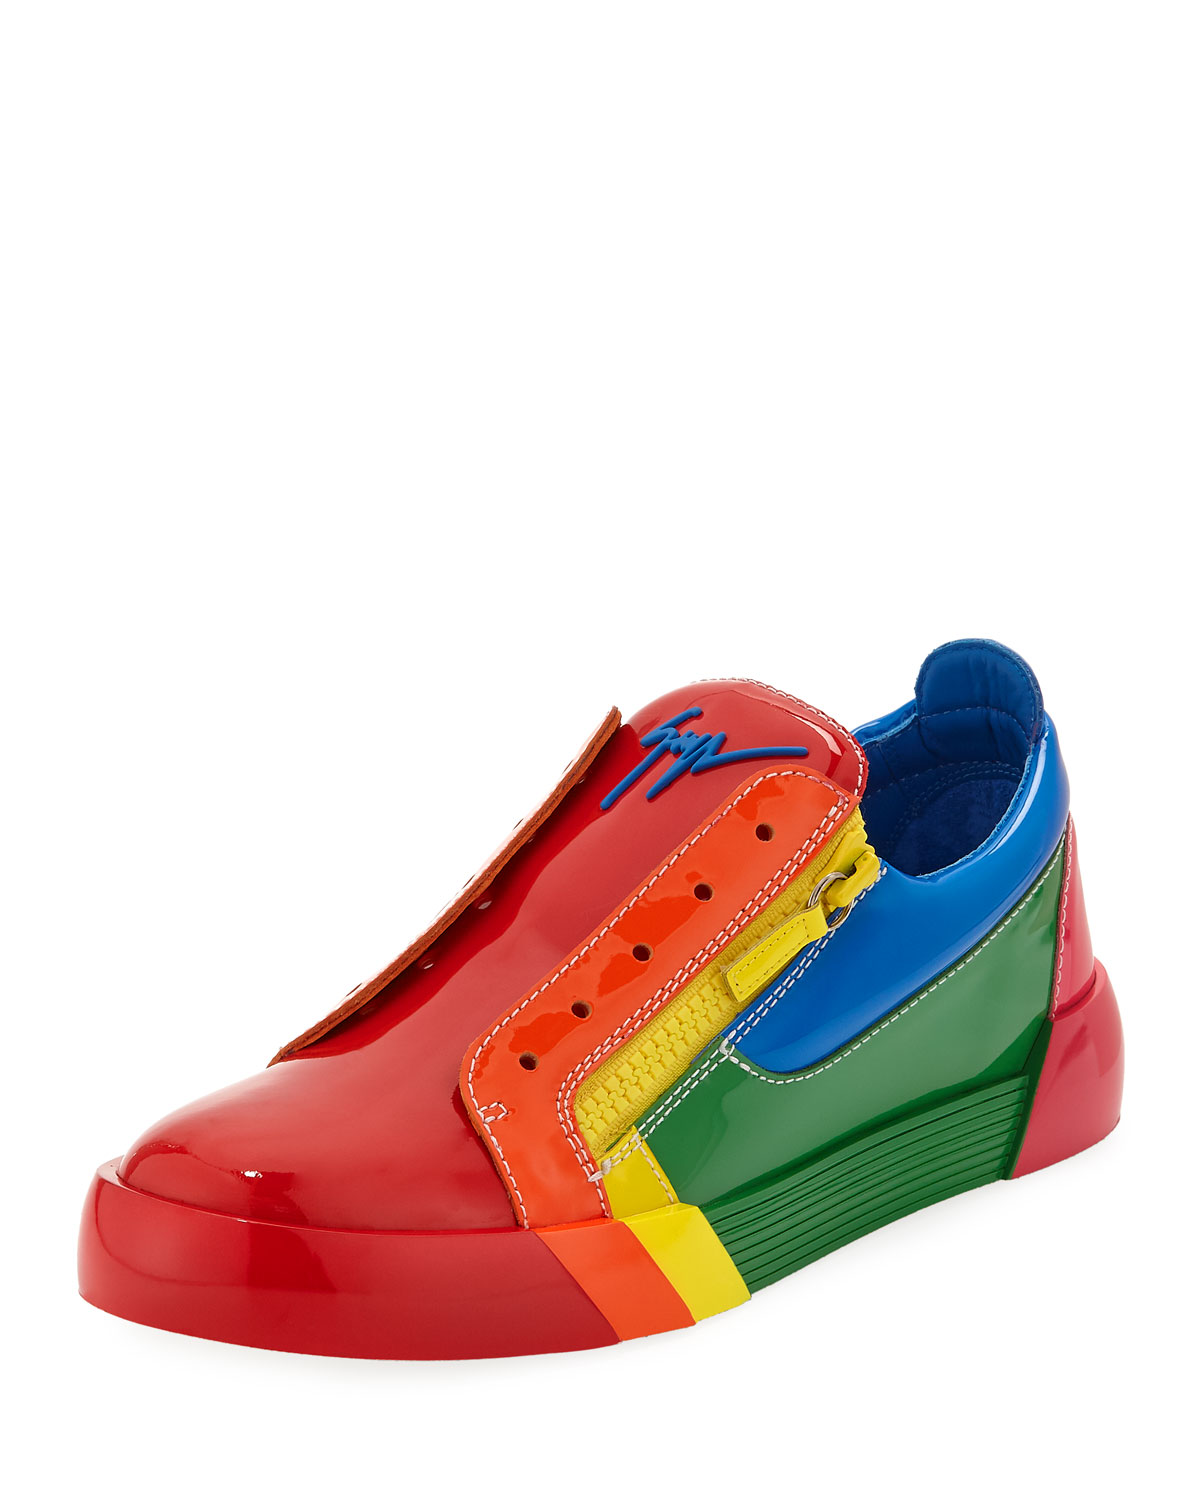 giuseppe zanotti men 39 s rainbow patent leather low top. Black Bedroom Furniture Sets. Home Design Ideas